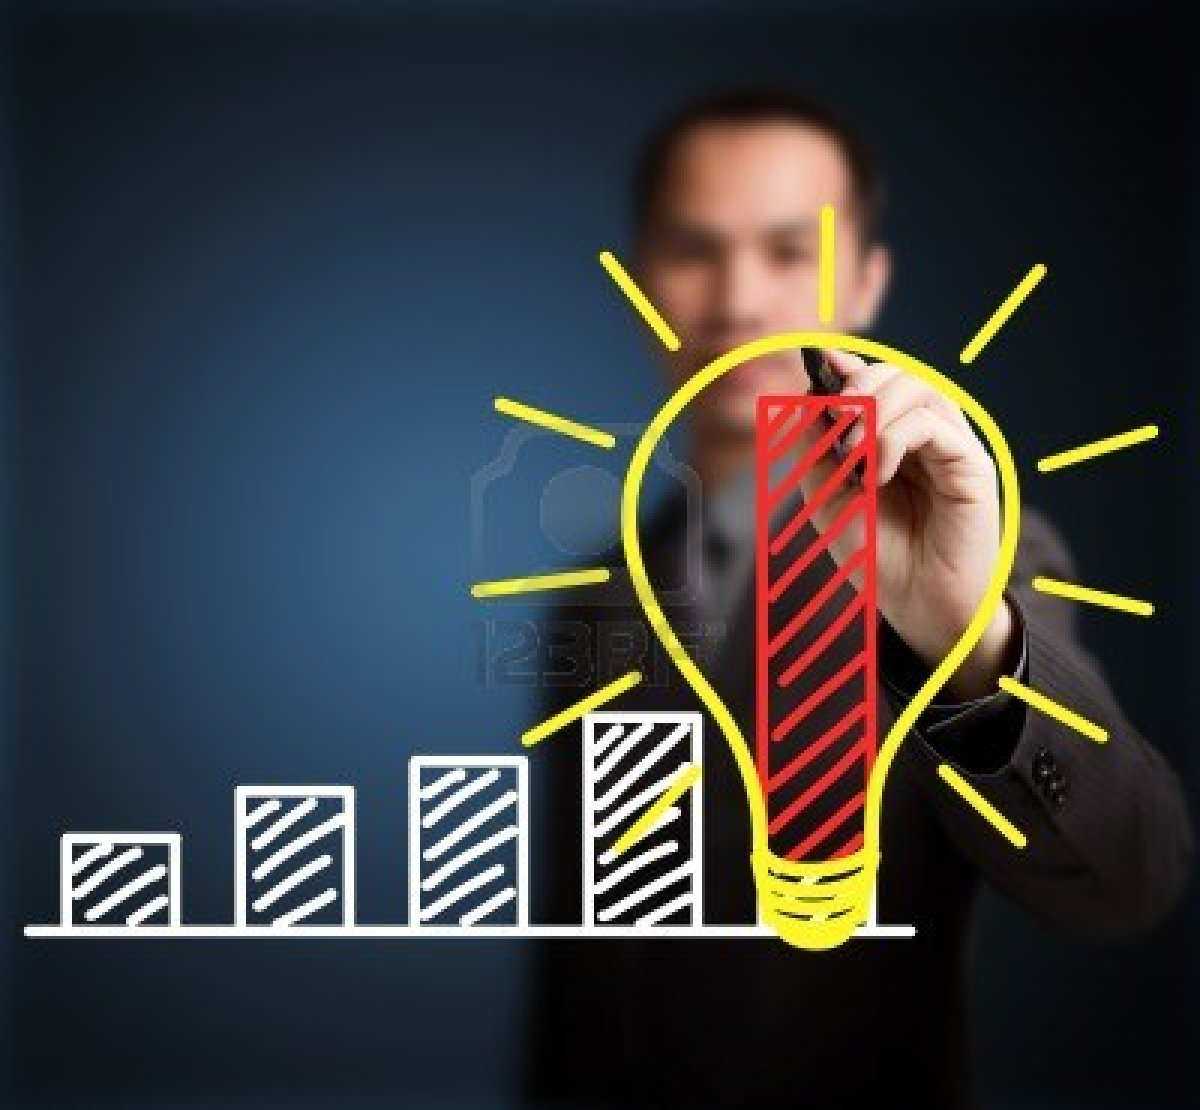 14123803-business-man-writing-concept-of-good-idea-can-make-rapid-growth-and-development.jpg